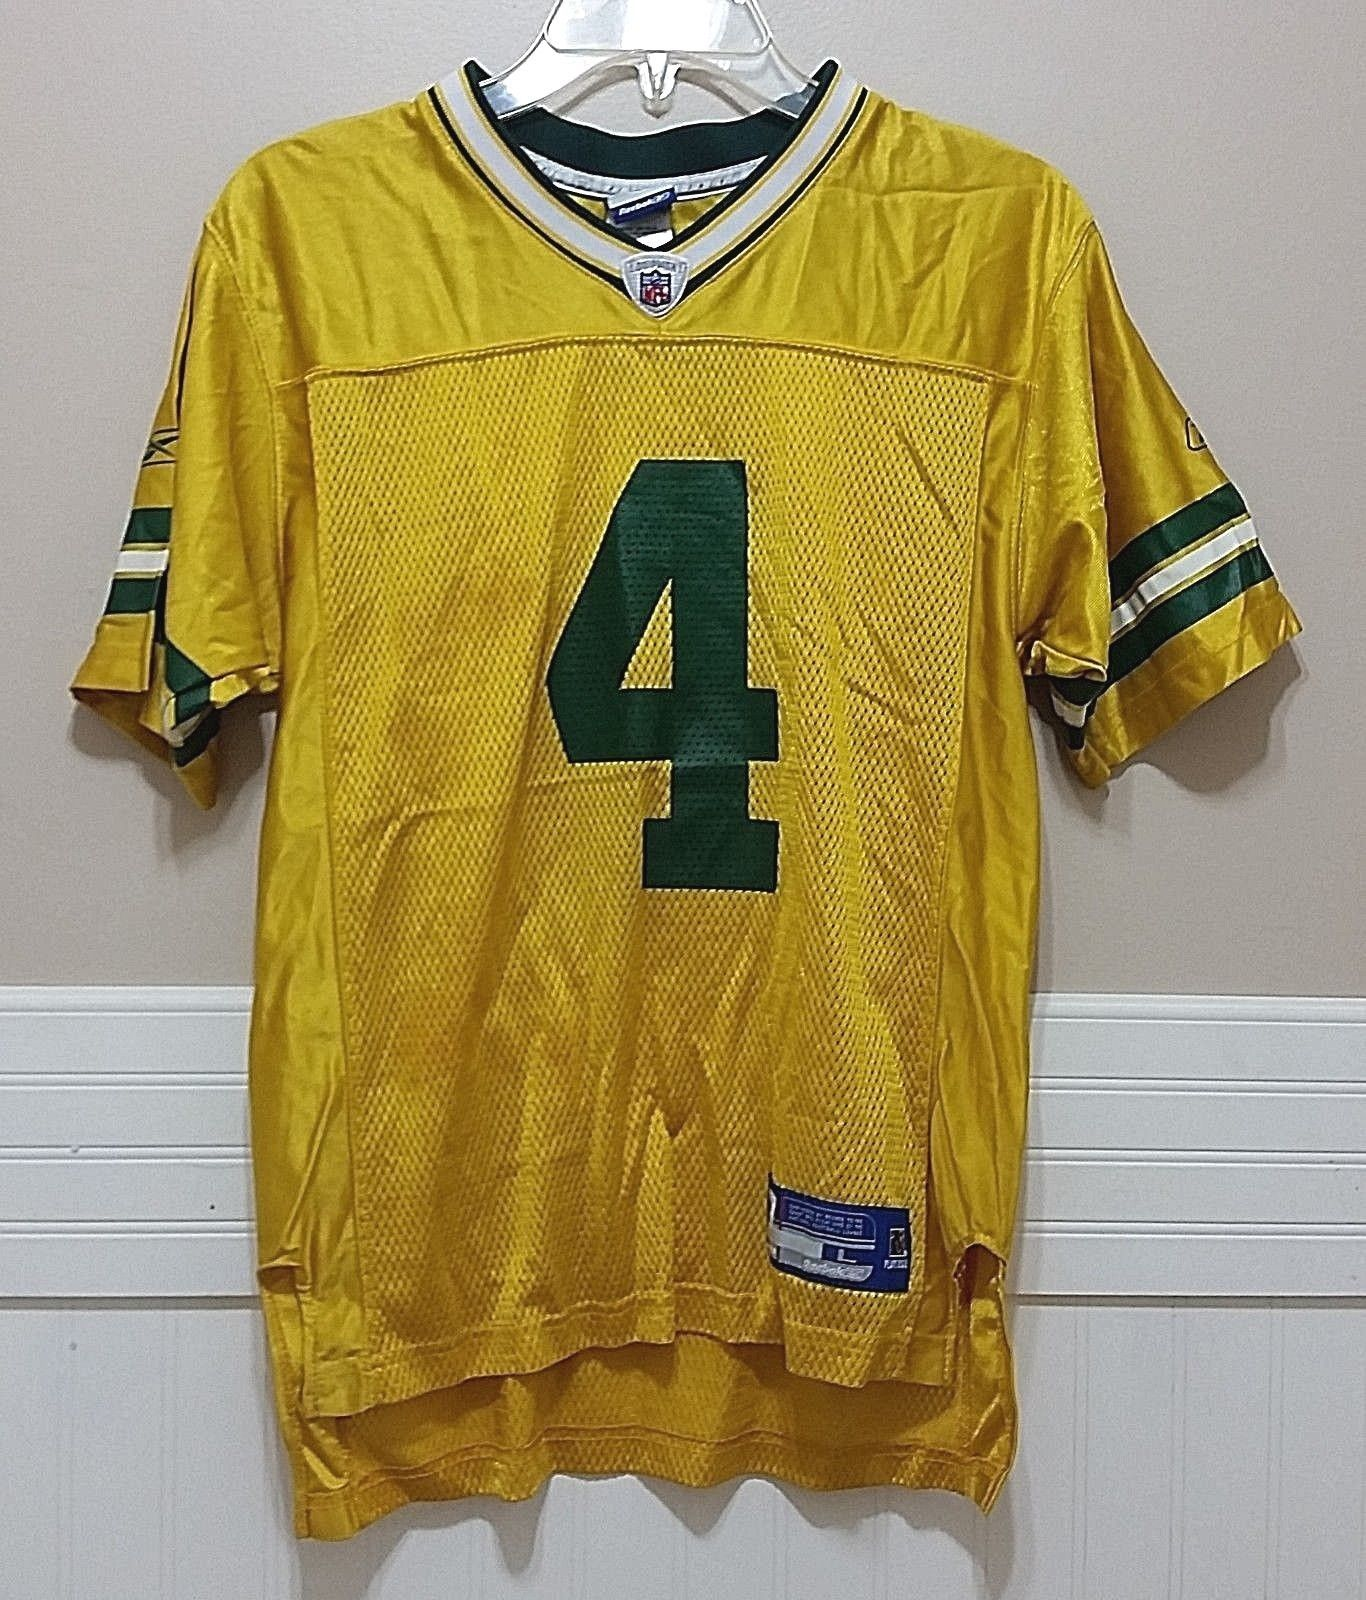 lowest price 1f9ae 6776d Brett Favre #4 Jersey Reebok Green Bay and 28 similar items